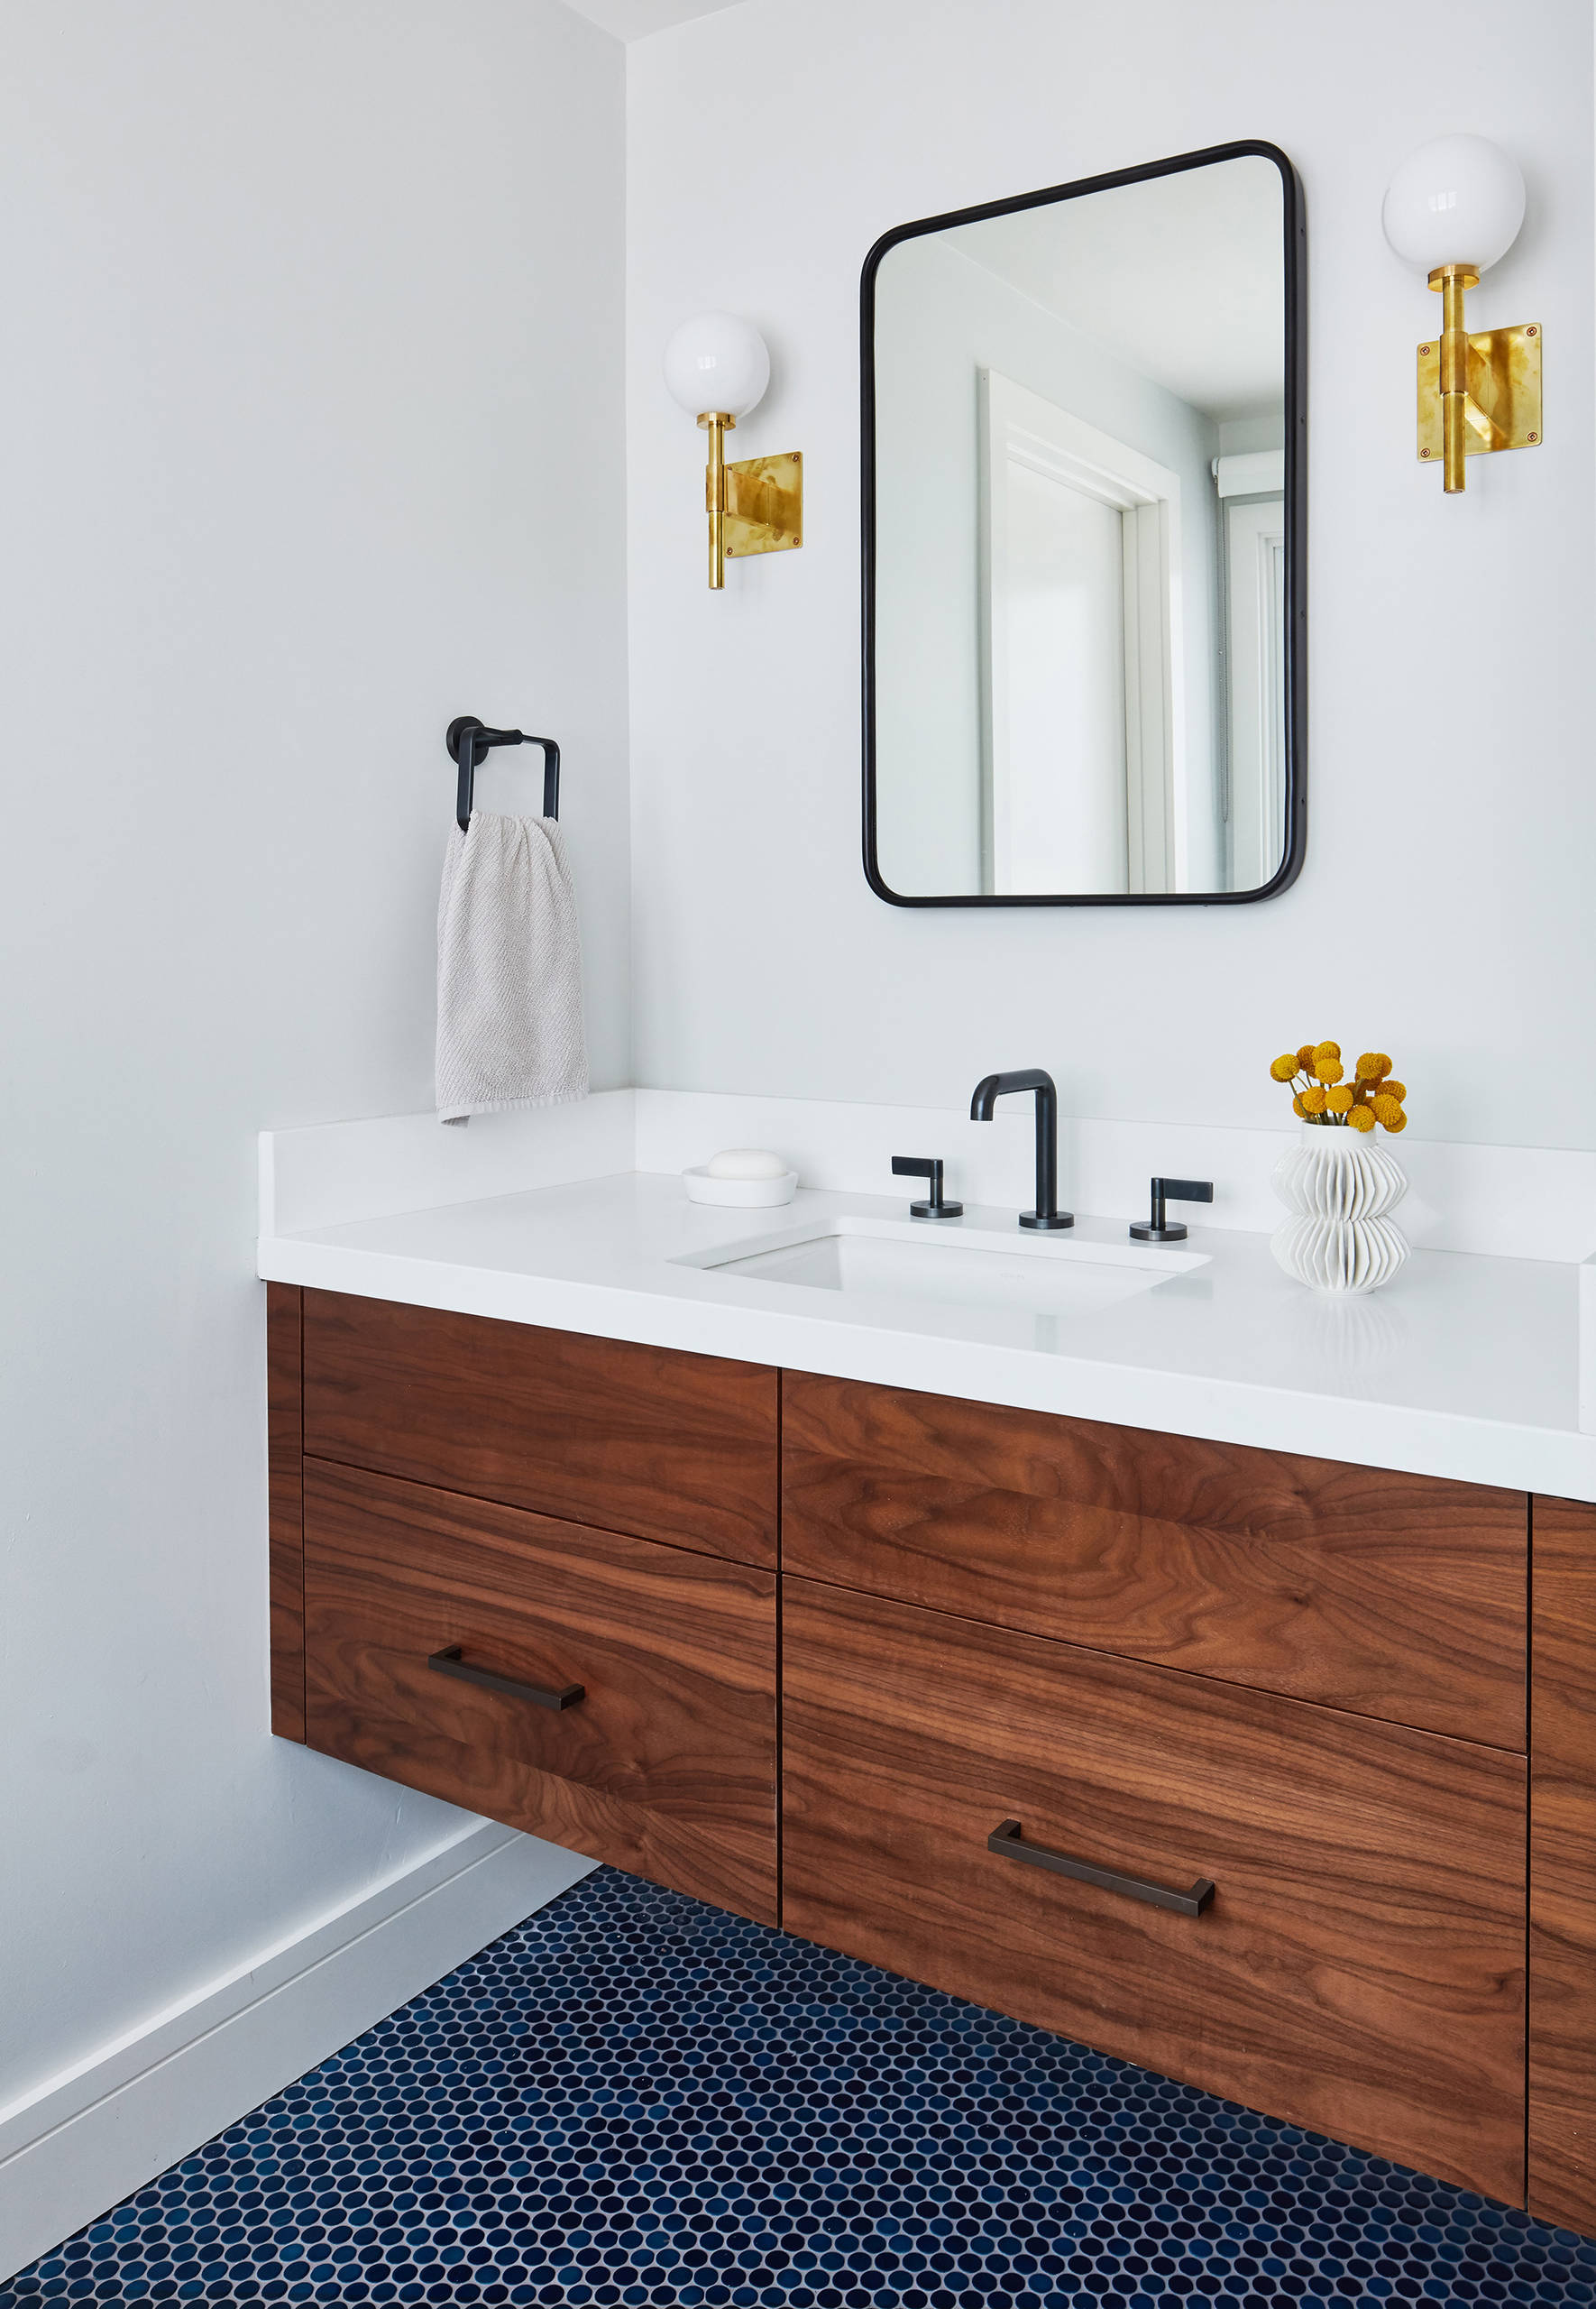 Image of: 75 Beautiful Mid Century Modern White Bathroom Pictures Ideas November 2020 Houzz